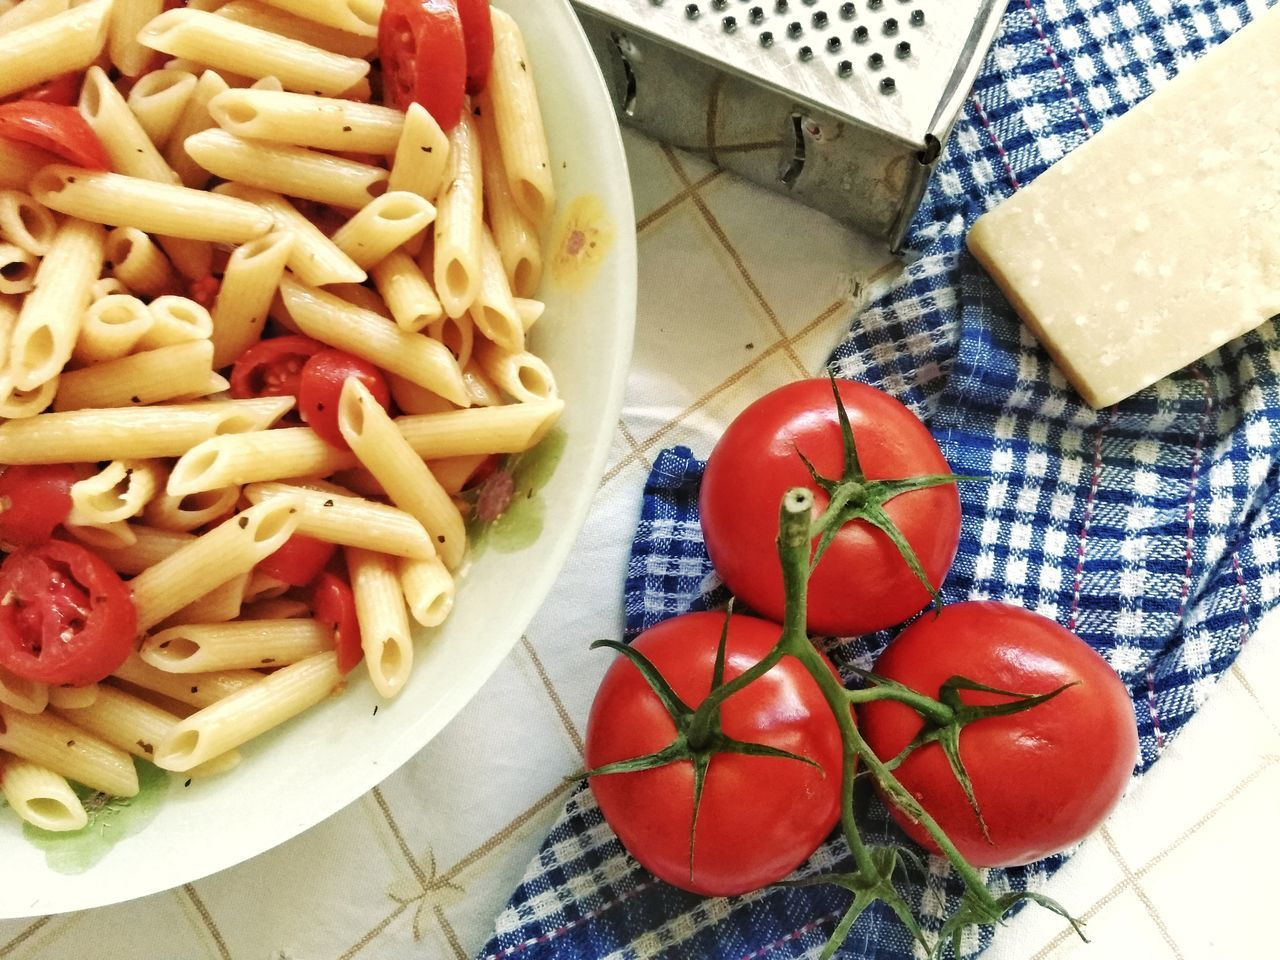 Food And Drink Food Indoors  Tomato Freshness Healthy Eating High Angle View Table Red Vegetable No People Italian Food Ready-to-eat Day Close-up Bowl Mediterranean Lifestyle Mediterranean Food Diet Comfort Food Homemade Pasta Red Plate Food And Drink